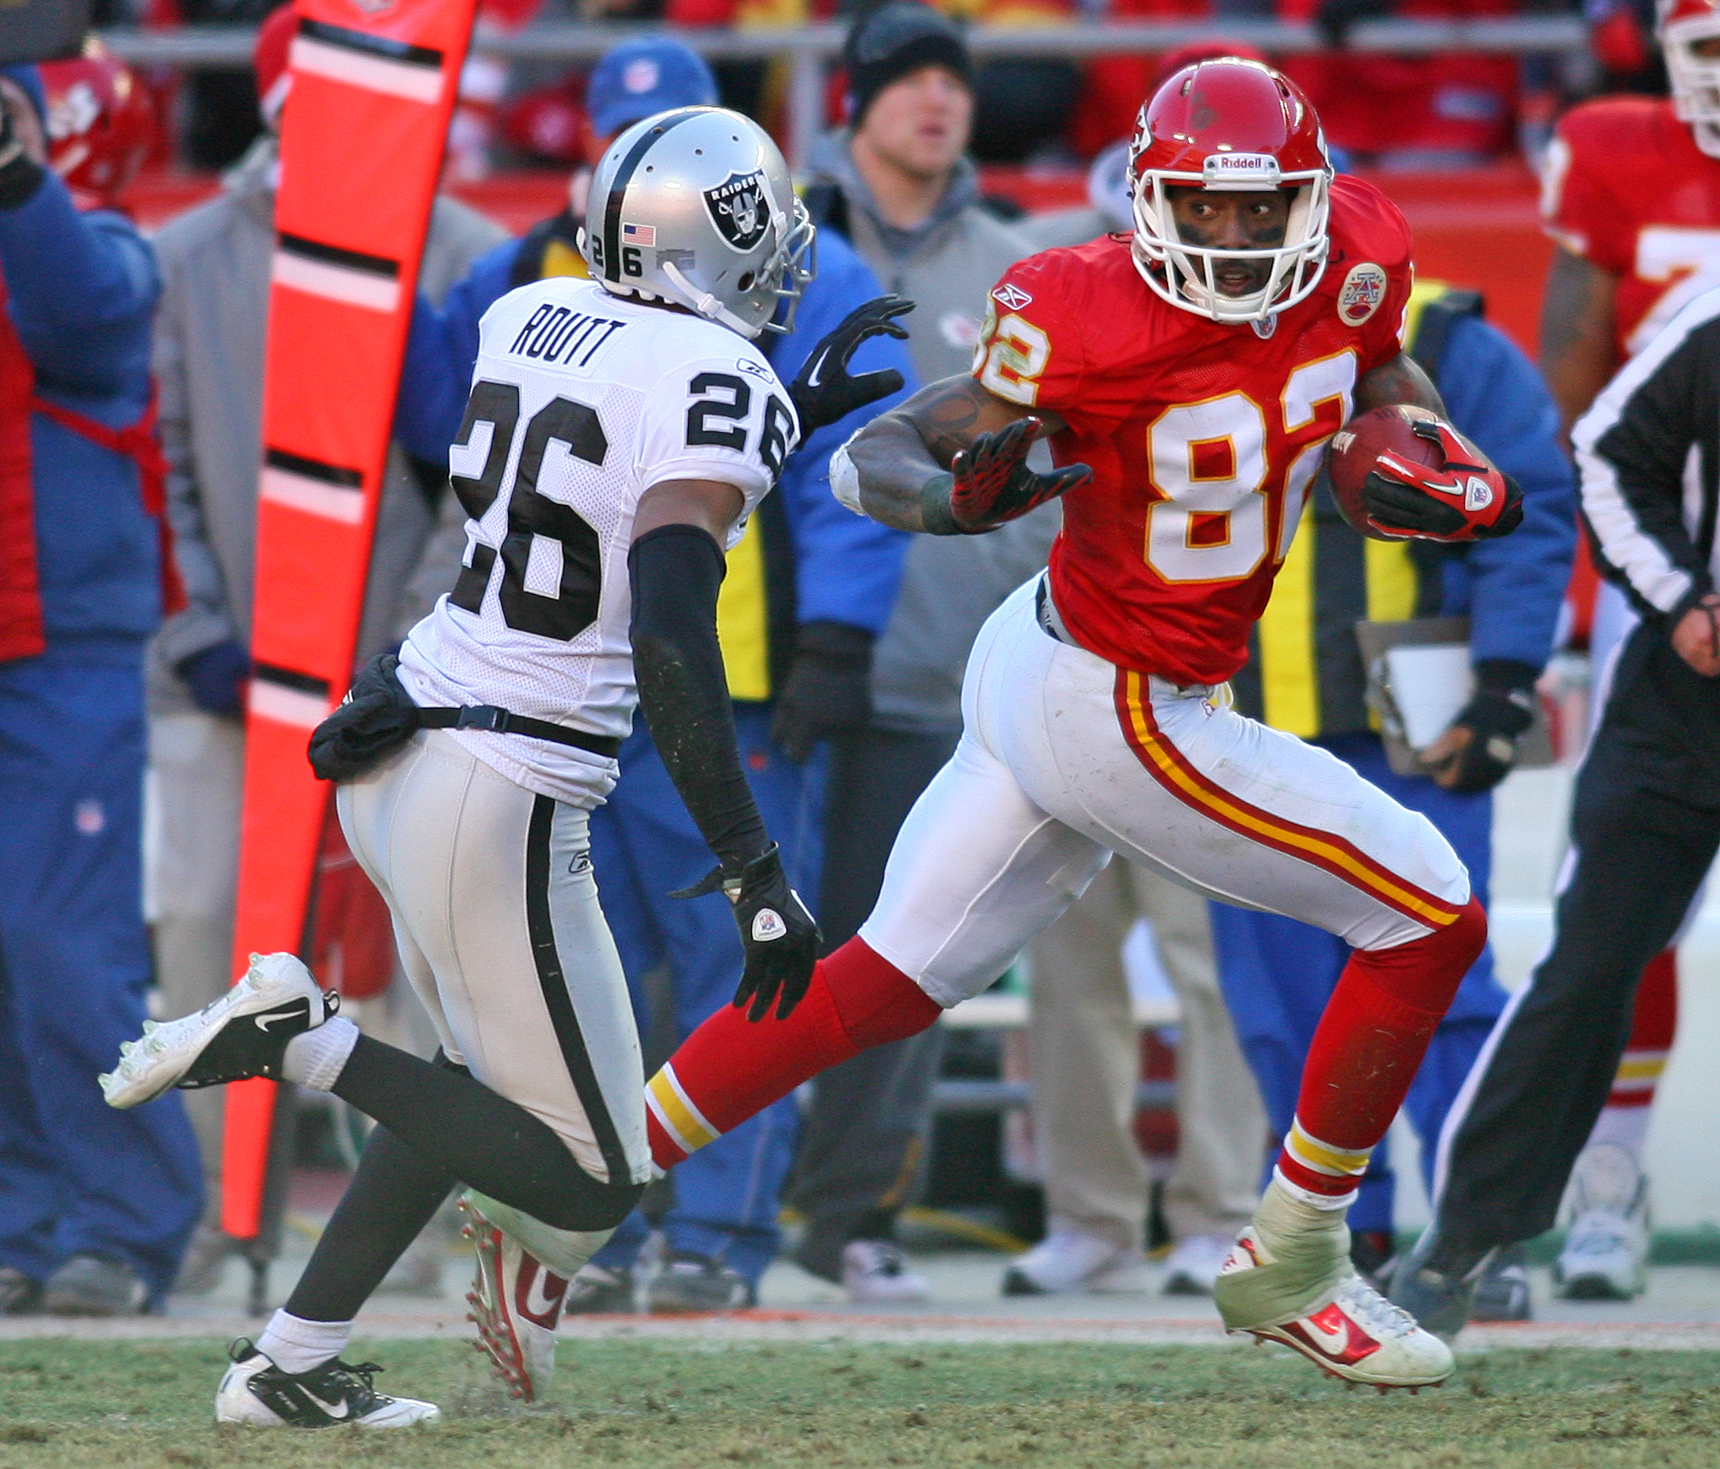 KANSAS CITY, MO - JANUARY 02:  Wide receiver Dwayne Bowe #82 of the Kansas City Chiefs runs down field in a game against the Oakland Raiders at Arrowhead Stadium on January 2, 2011 in Kansas City, Missouri.  (Photo by Tim Umphrey/Getty Images)